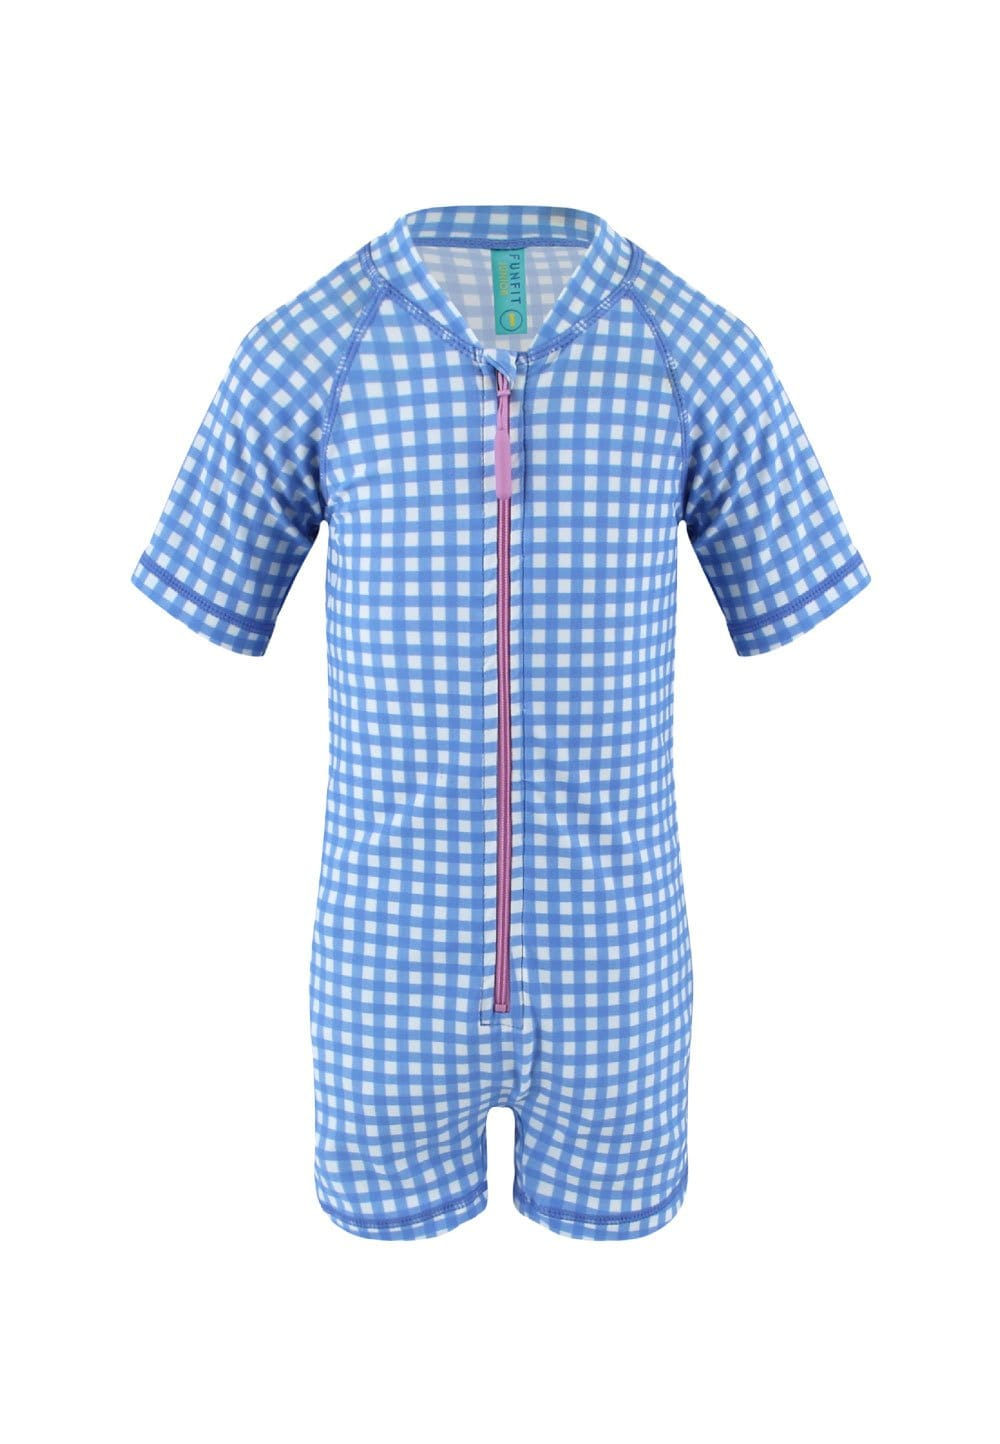 UPF50+ Junior Sunsuit Half Sleeve (Unisex) in Gingham Summer Print